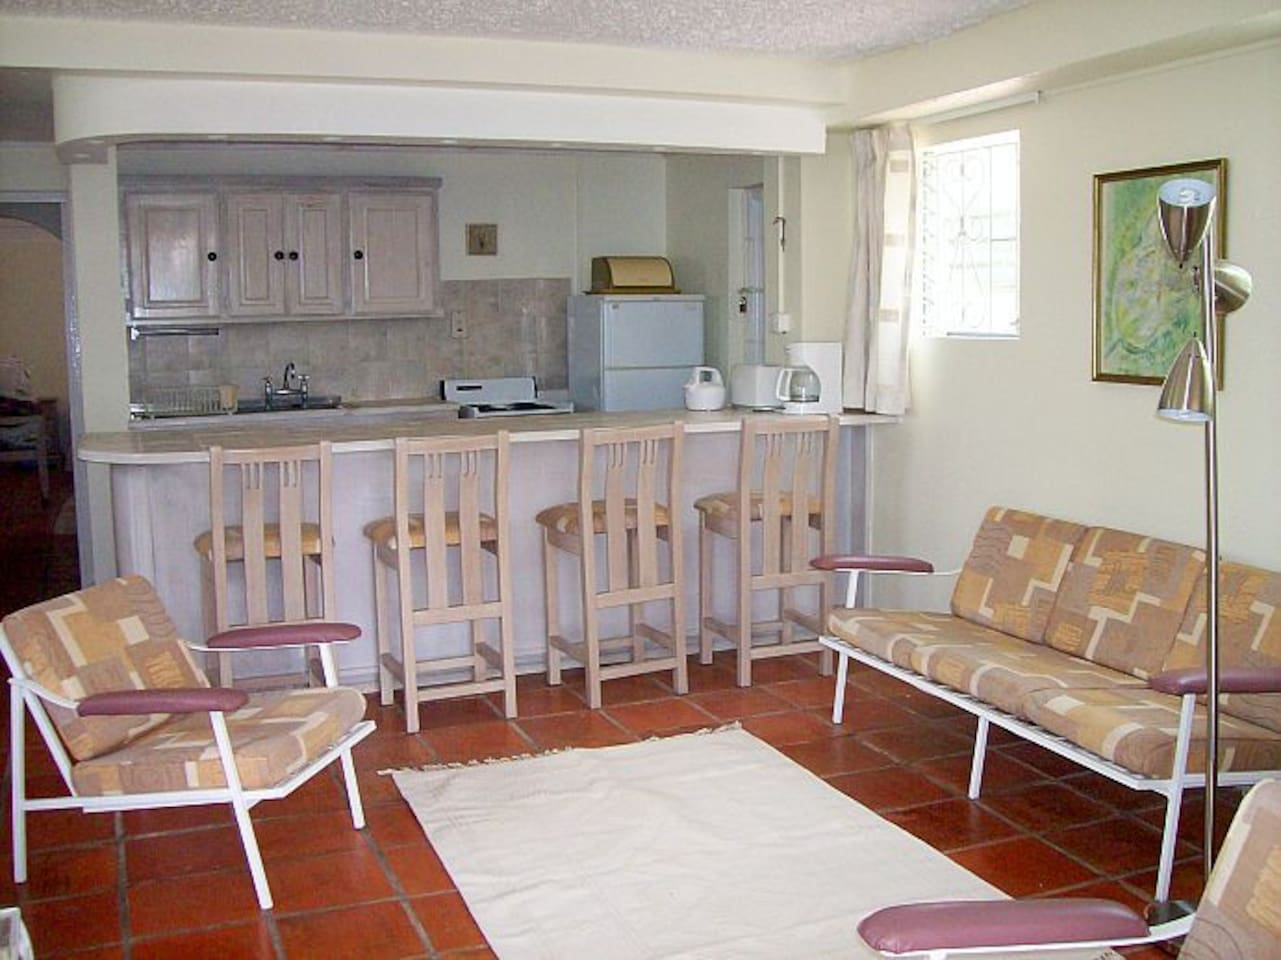 Spacious living area, kitchen with fridge, stove.  There is a stackable washer/dryer in the closet